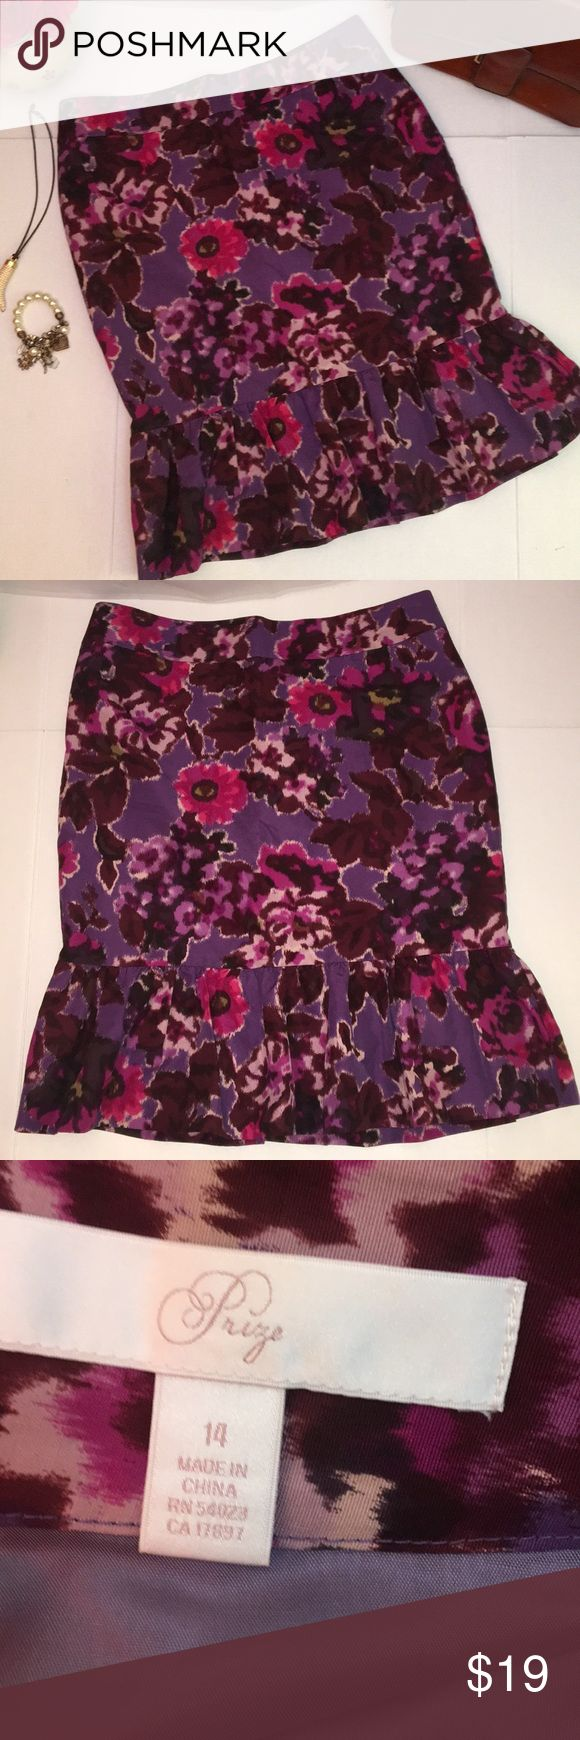 """Prize Skirt Size 14 Prize Skirt Size 14 Multicolor- Purple, Pink, Brown 70% Cotton 30% Silk  Pre-owned Sold as-is Only one minor flaw (see blow)  Approximate flat lay measurements: Waist - 17"""" Hip - 21"""" Length - 24""""  Condition: Very Good condition except for minor flaw in lining.  No stains holes or major signs of use There is a small, about 2 inches rip on liner (Photo 8).  Reasonable offers accepted. No trades please.  Thank you for Poshing! 😊🌺 Prize Skirts"""